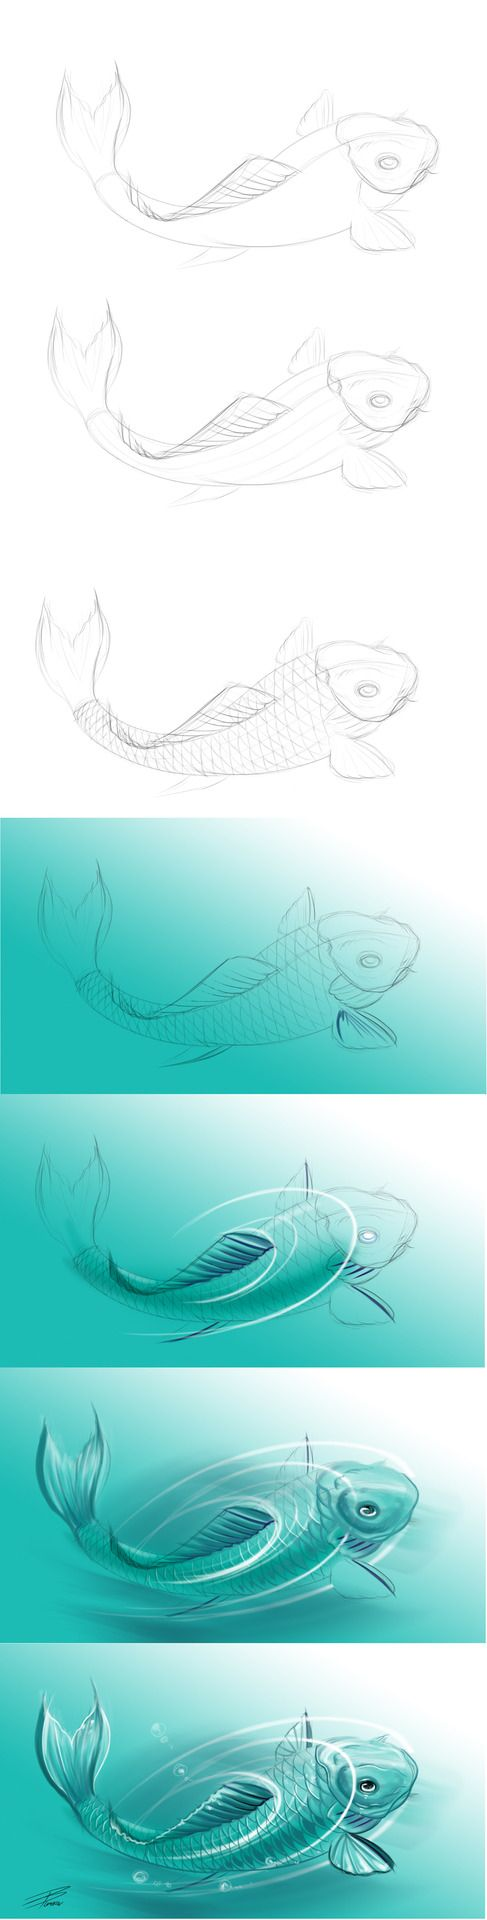 How To Draw A Koi Fish I took screenshots along the way, i hope it helps!Final picture can be found here: [link] by ~davepinsker